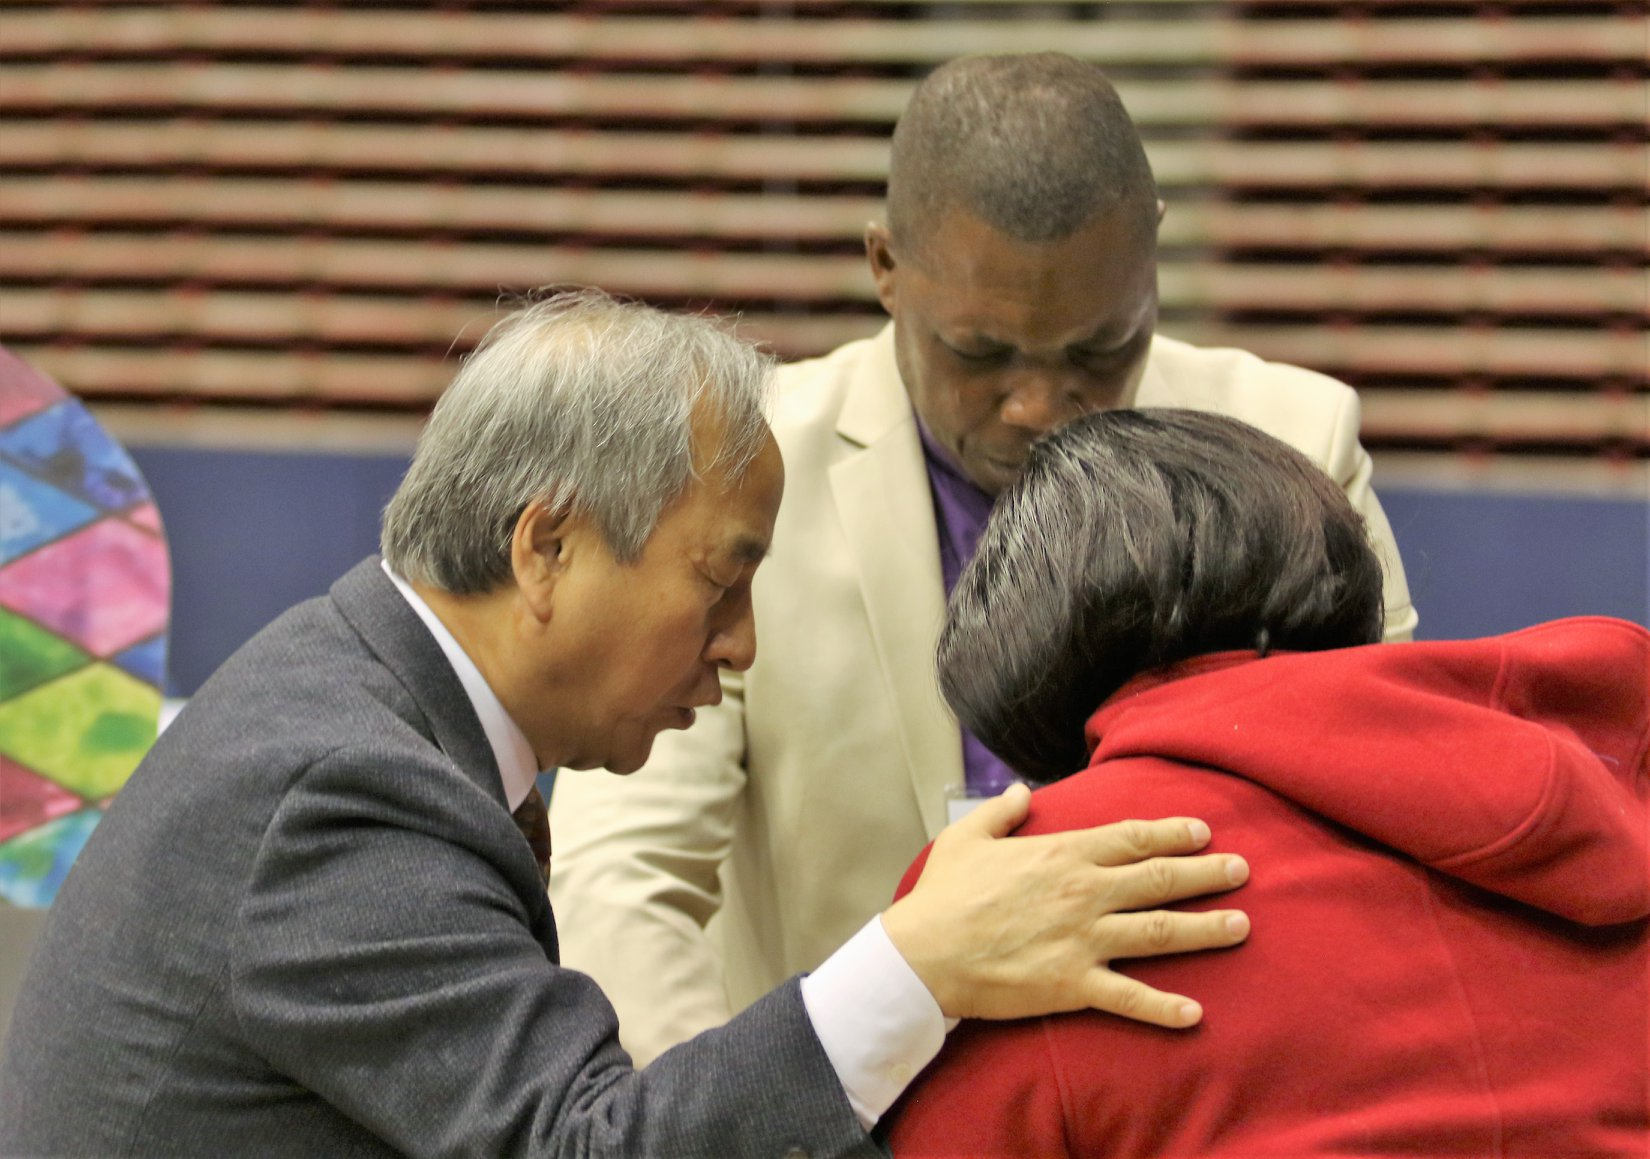 Bishop Hee-Soo Jung, left, prays with delegates during a Day of Prayer on the first day of General Conference 2019 in St. Louis. Photo by the Rev. Thomas Kim, UMNS.